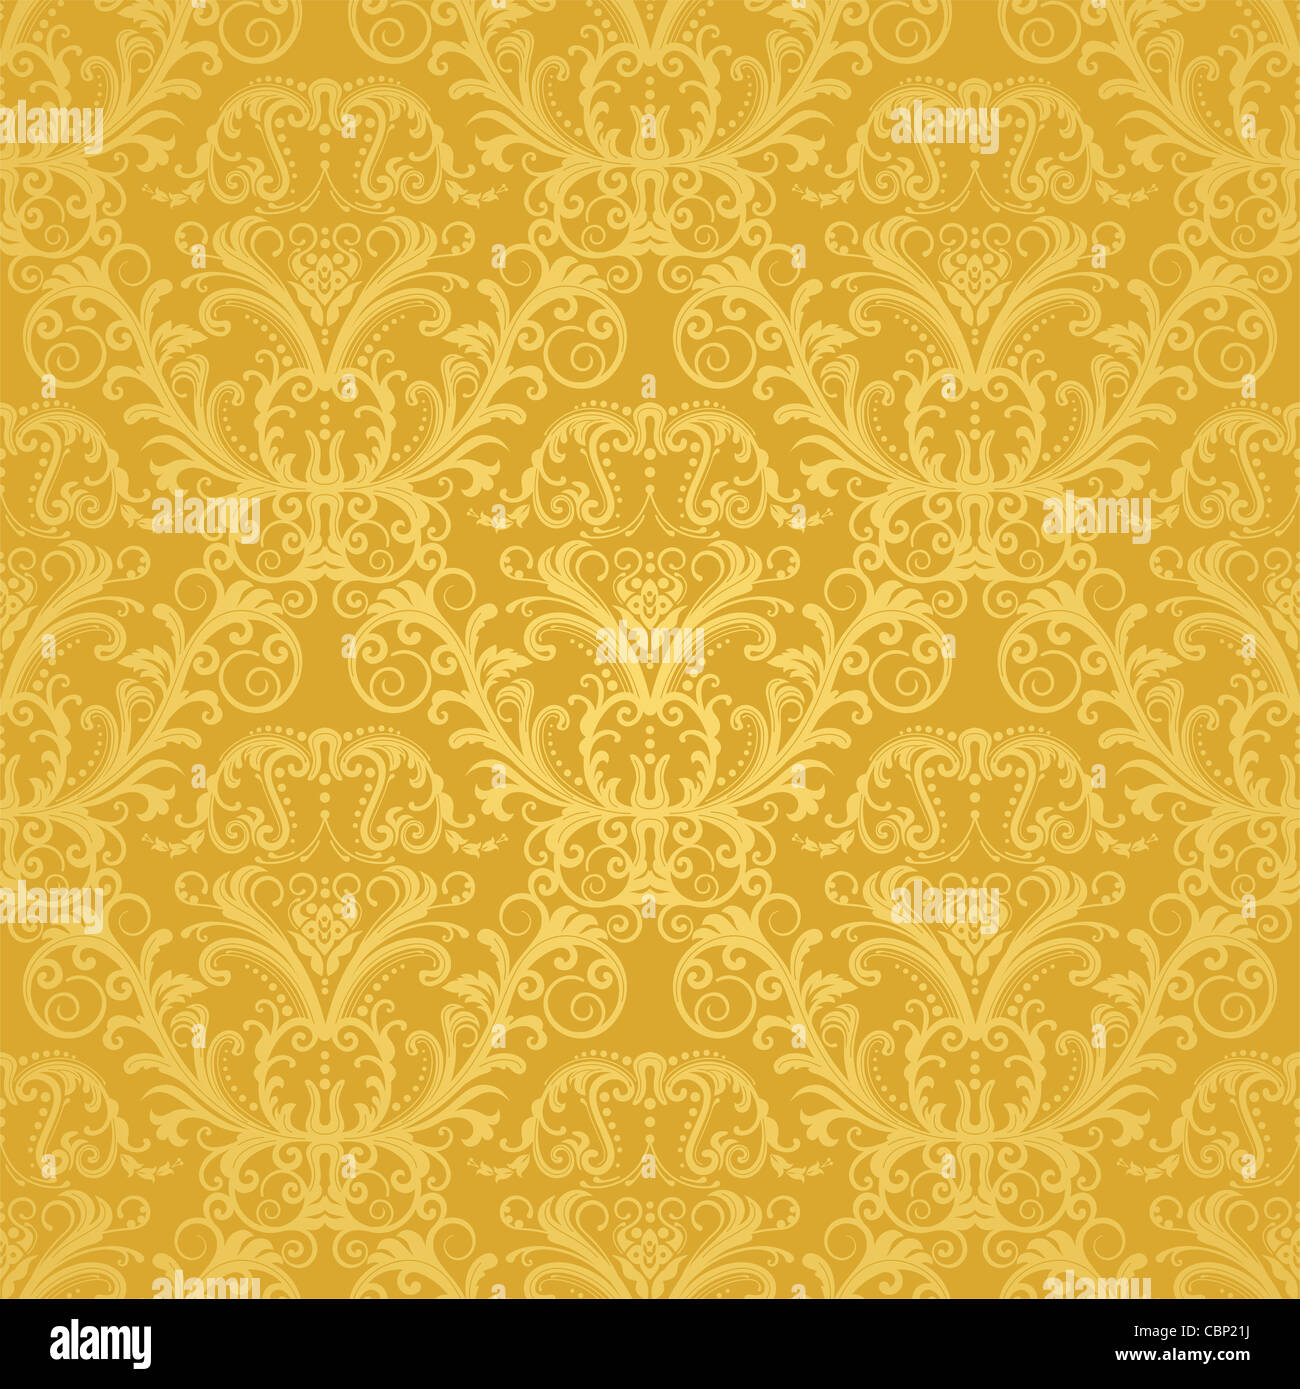 Luxury Seamless Golden Floral Wallpaper Pattern